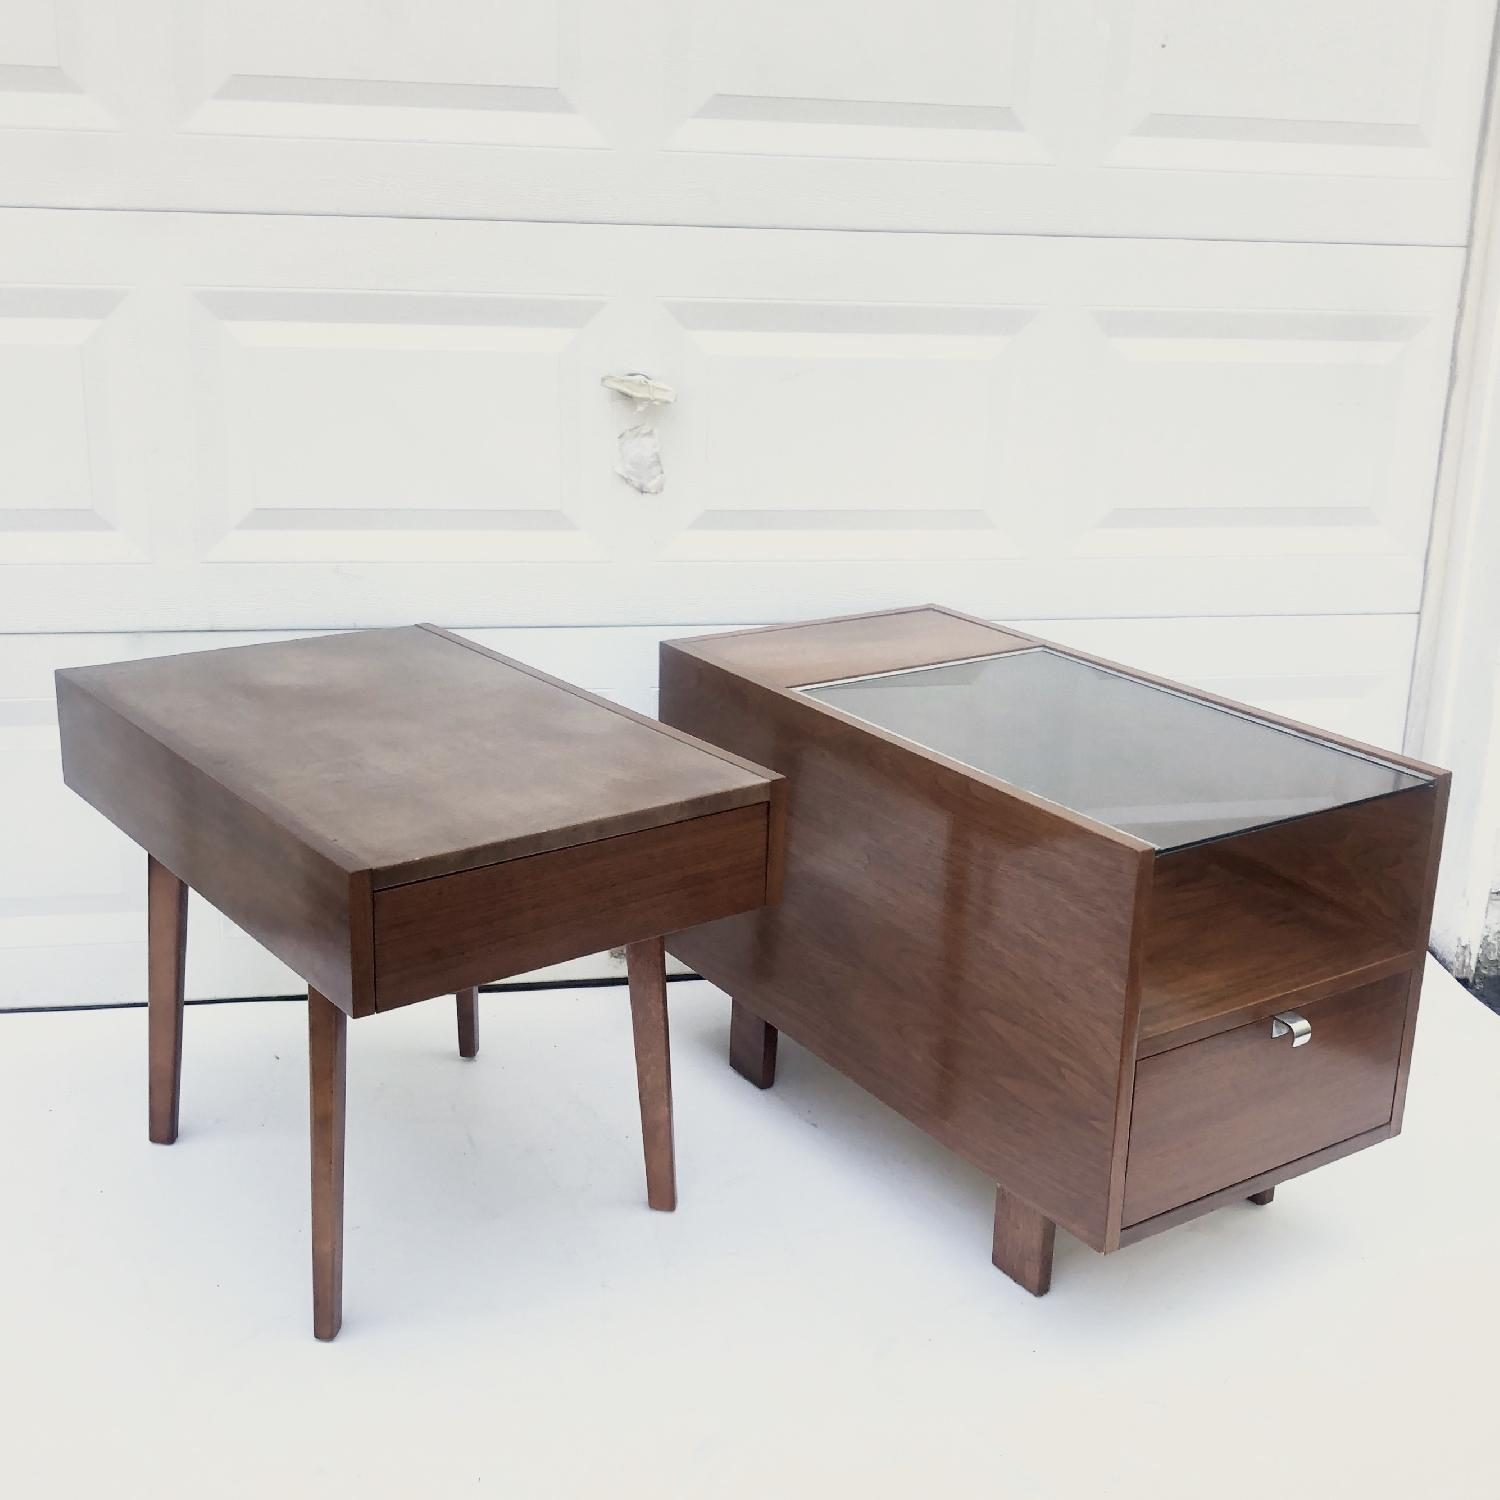 Herman Miller Side Tables by George Nelson - image-0